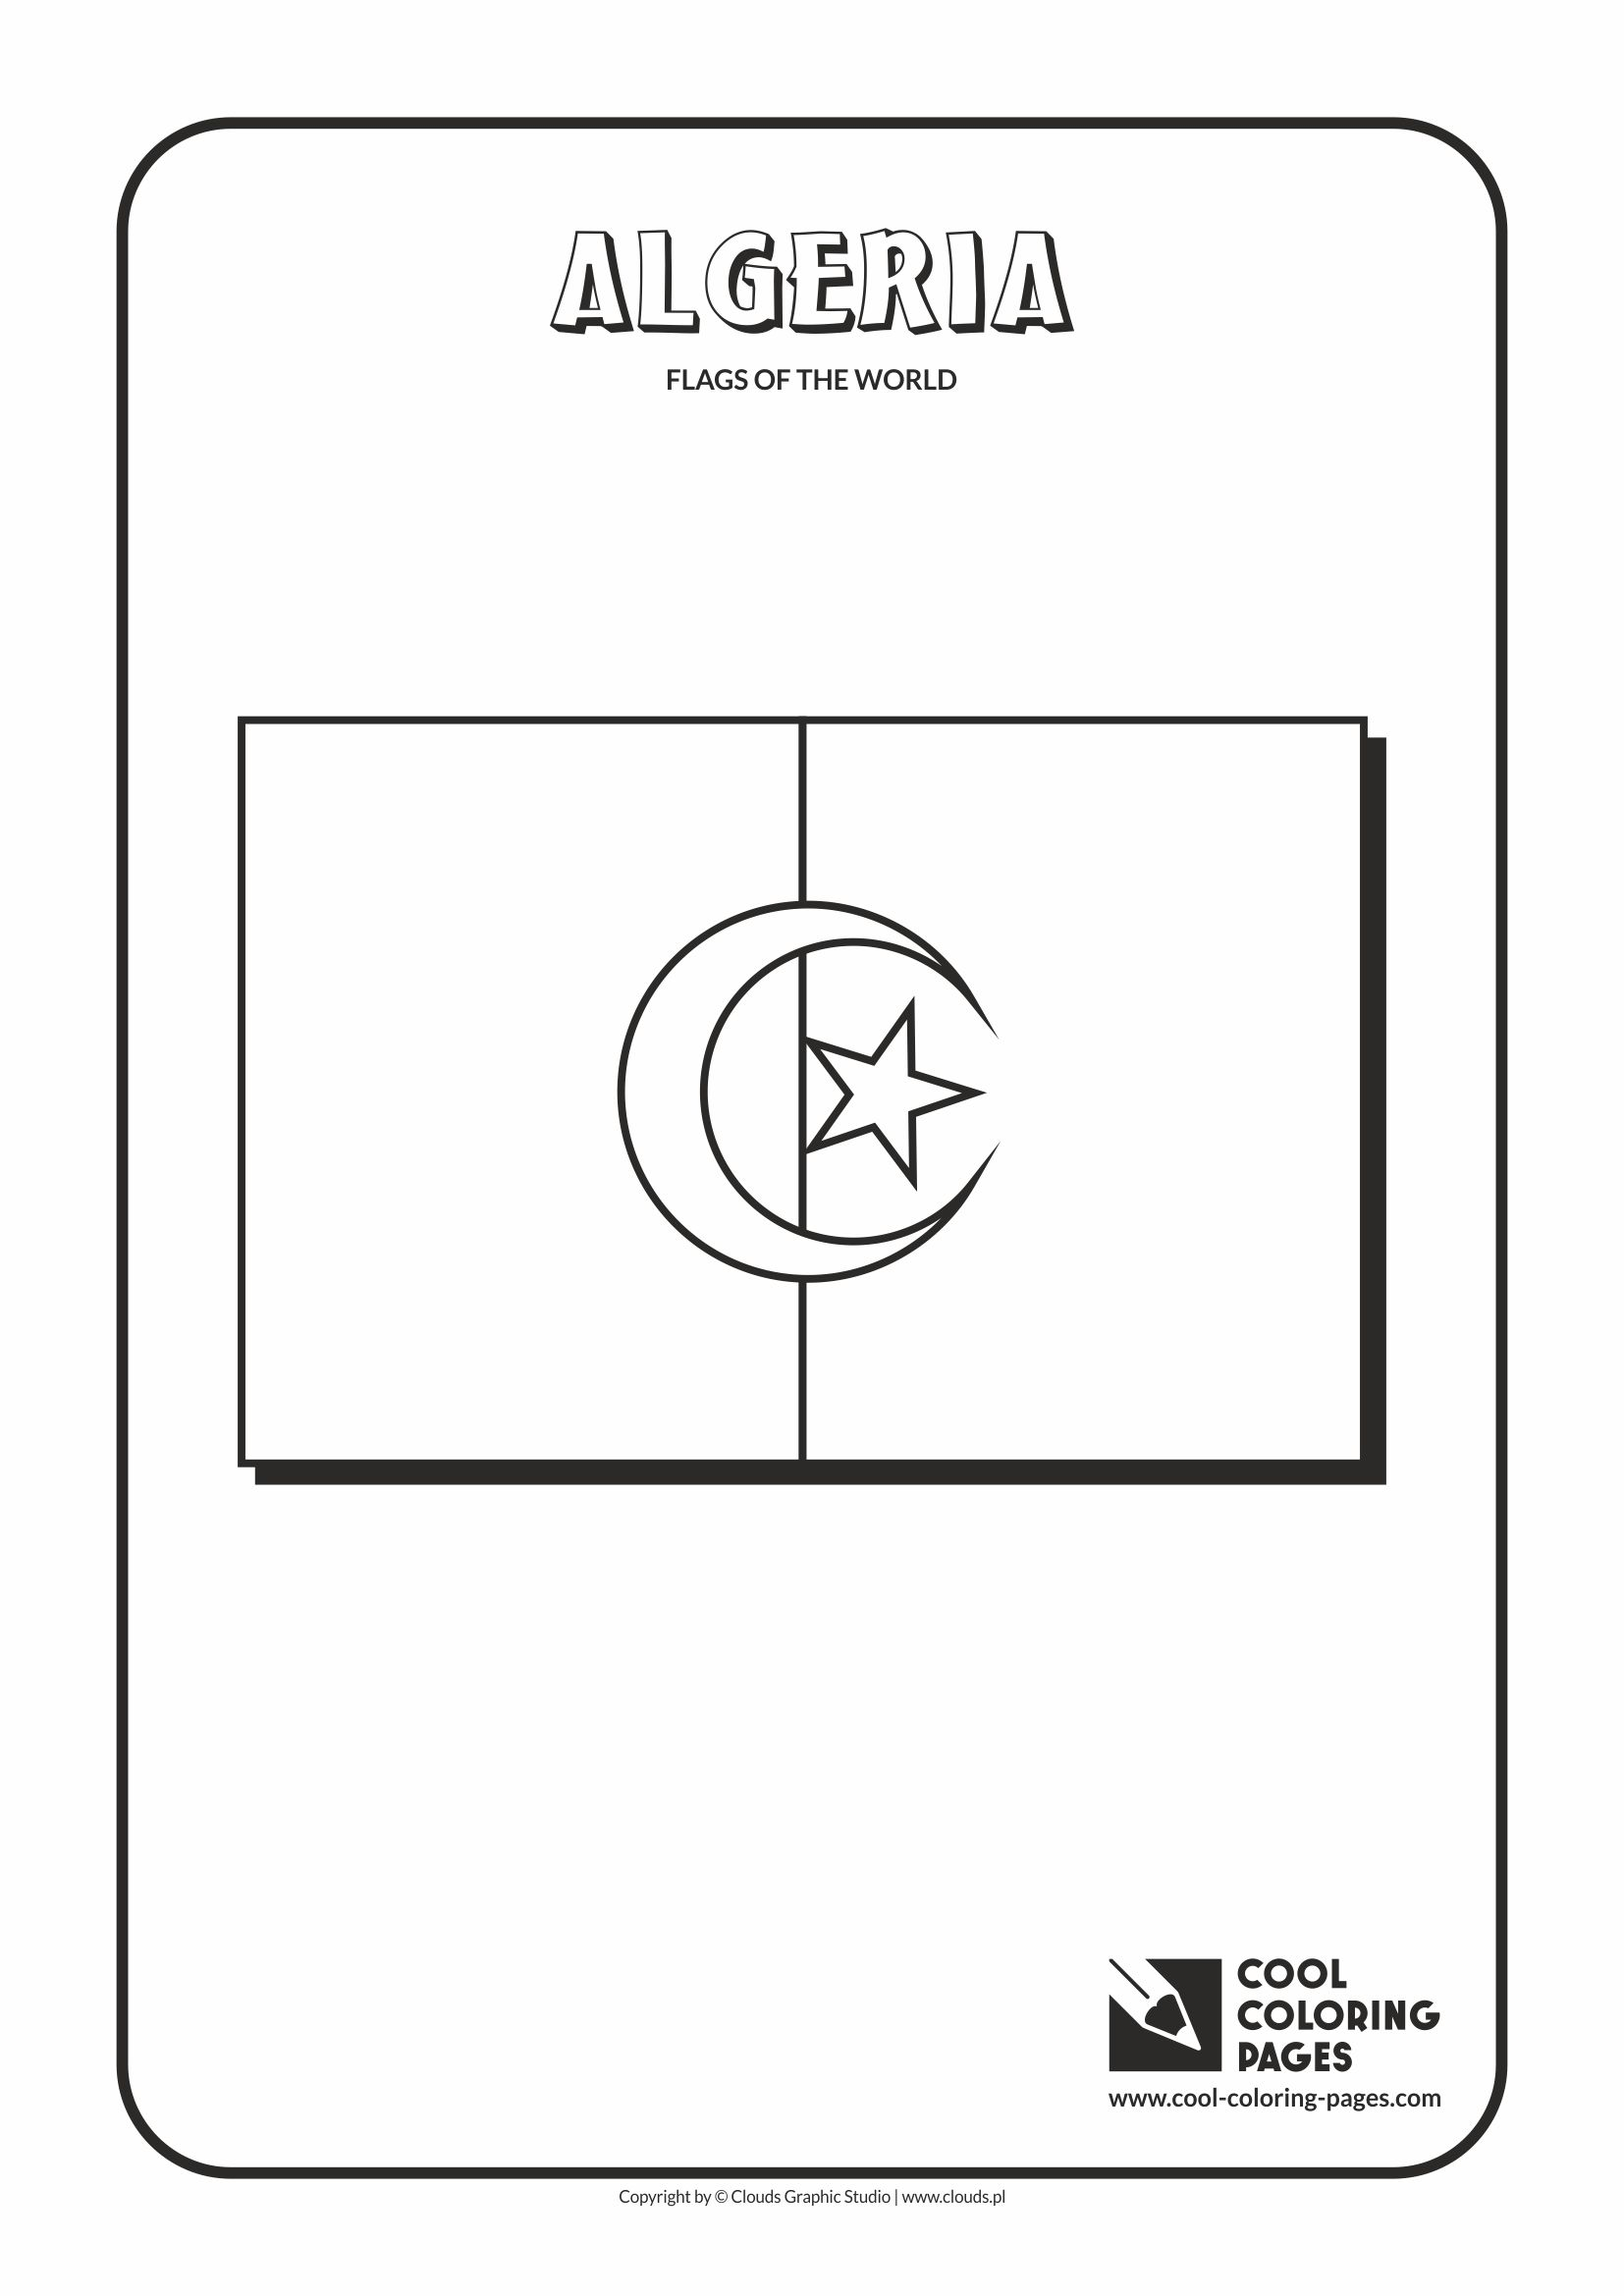 cool coloring pages flags of the world algeria flag - Flags World Coloring Pages